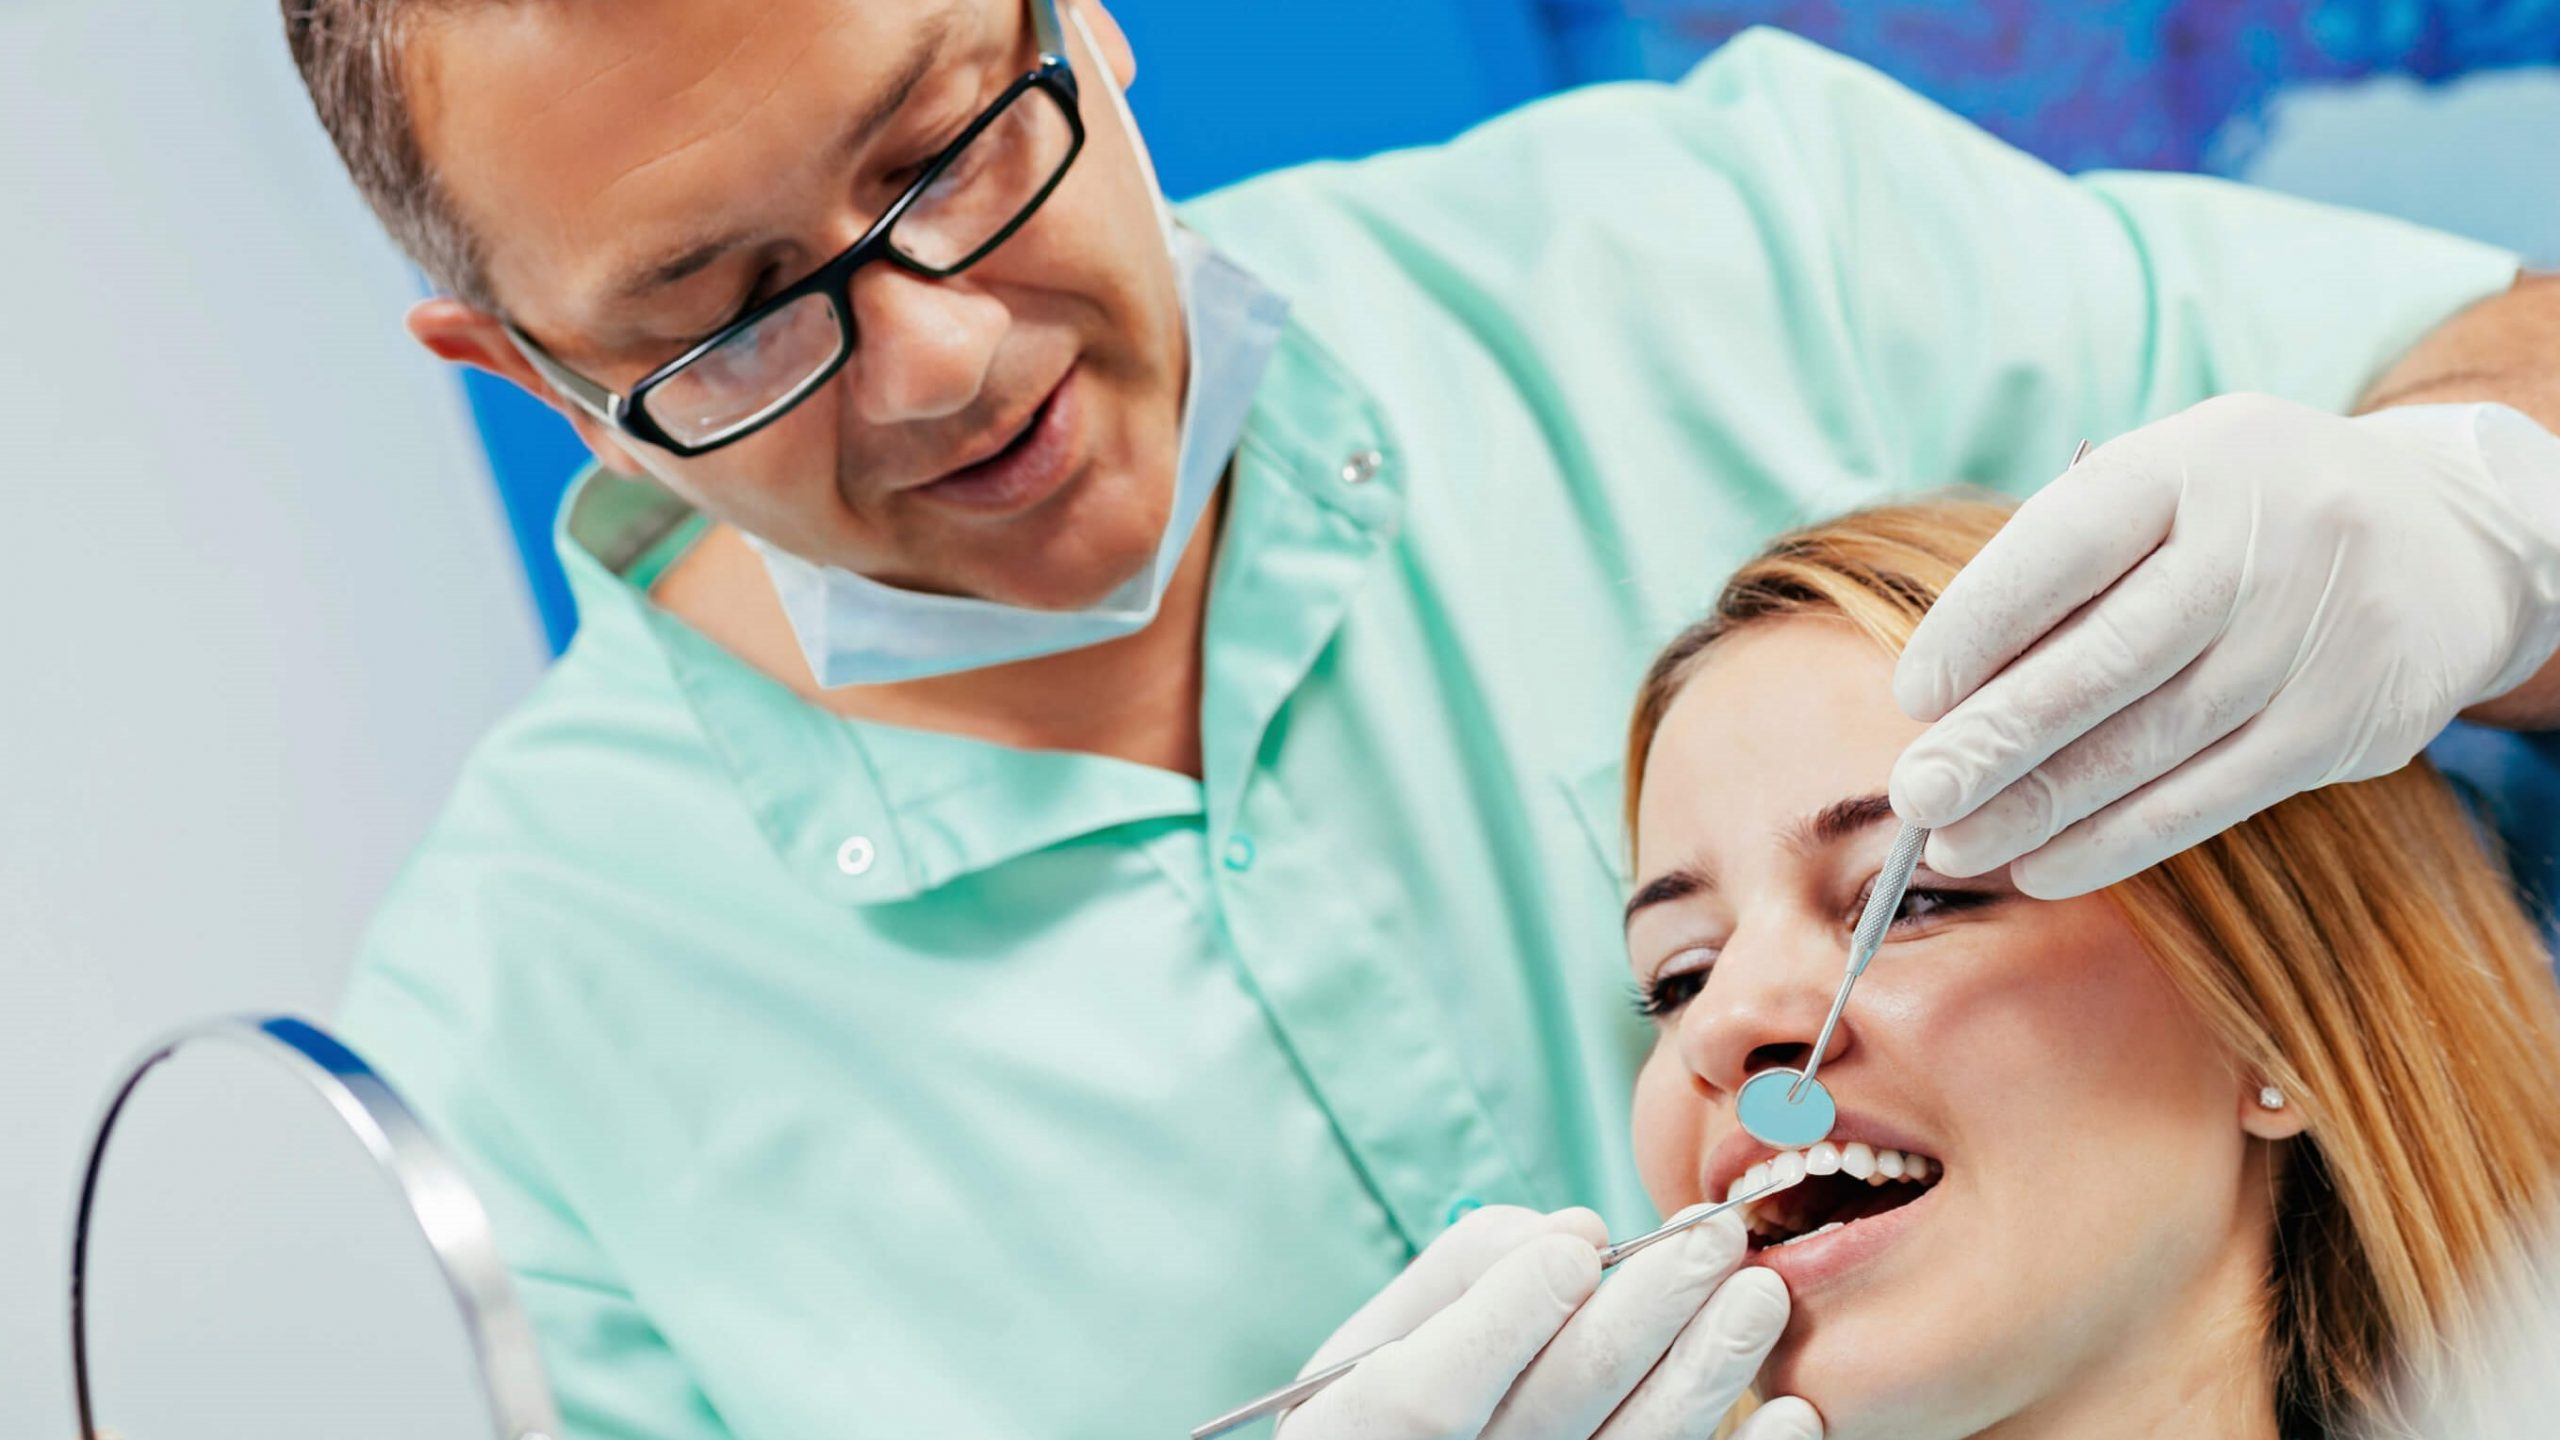 Tips on Choosing a Good Orthodontist